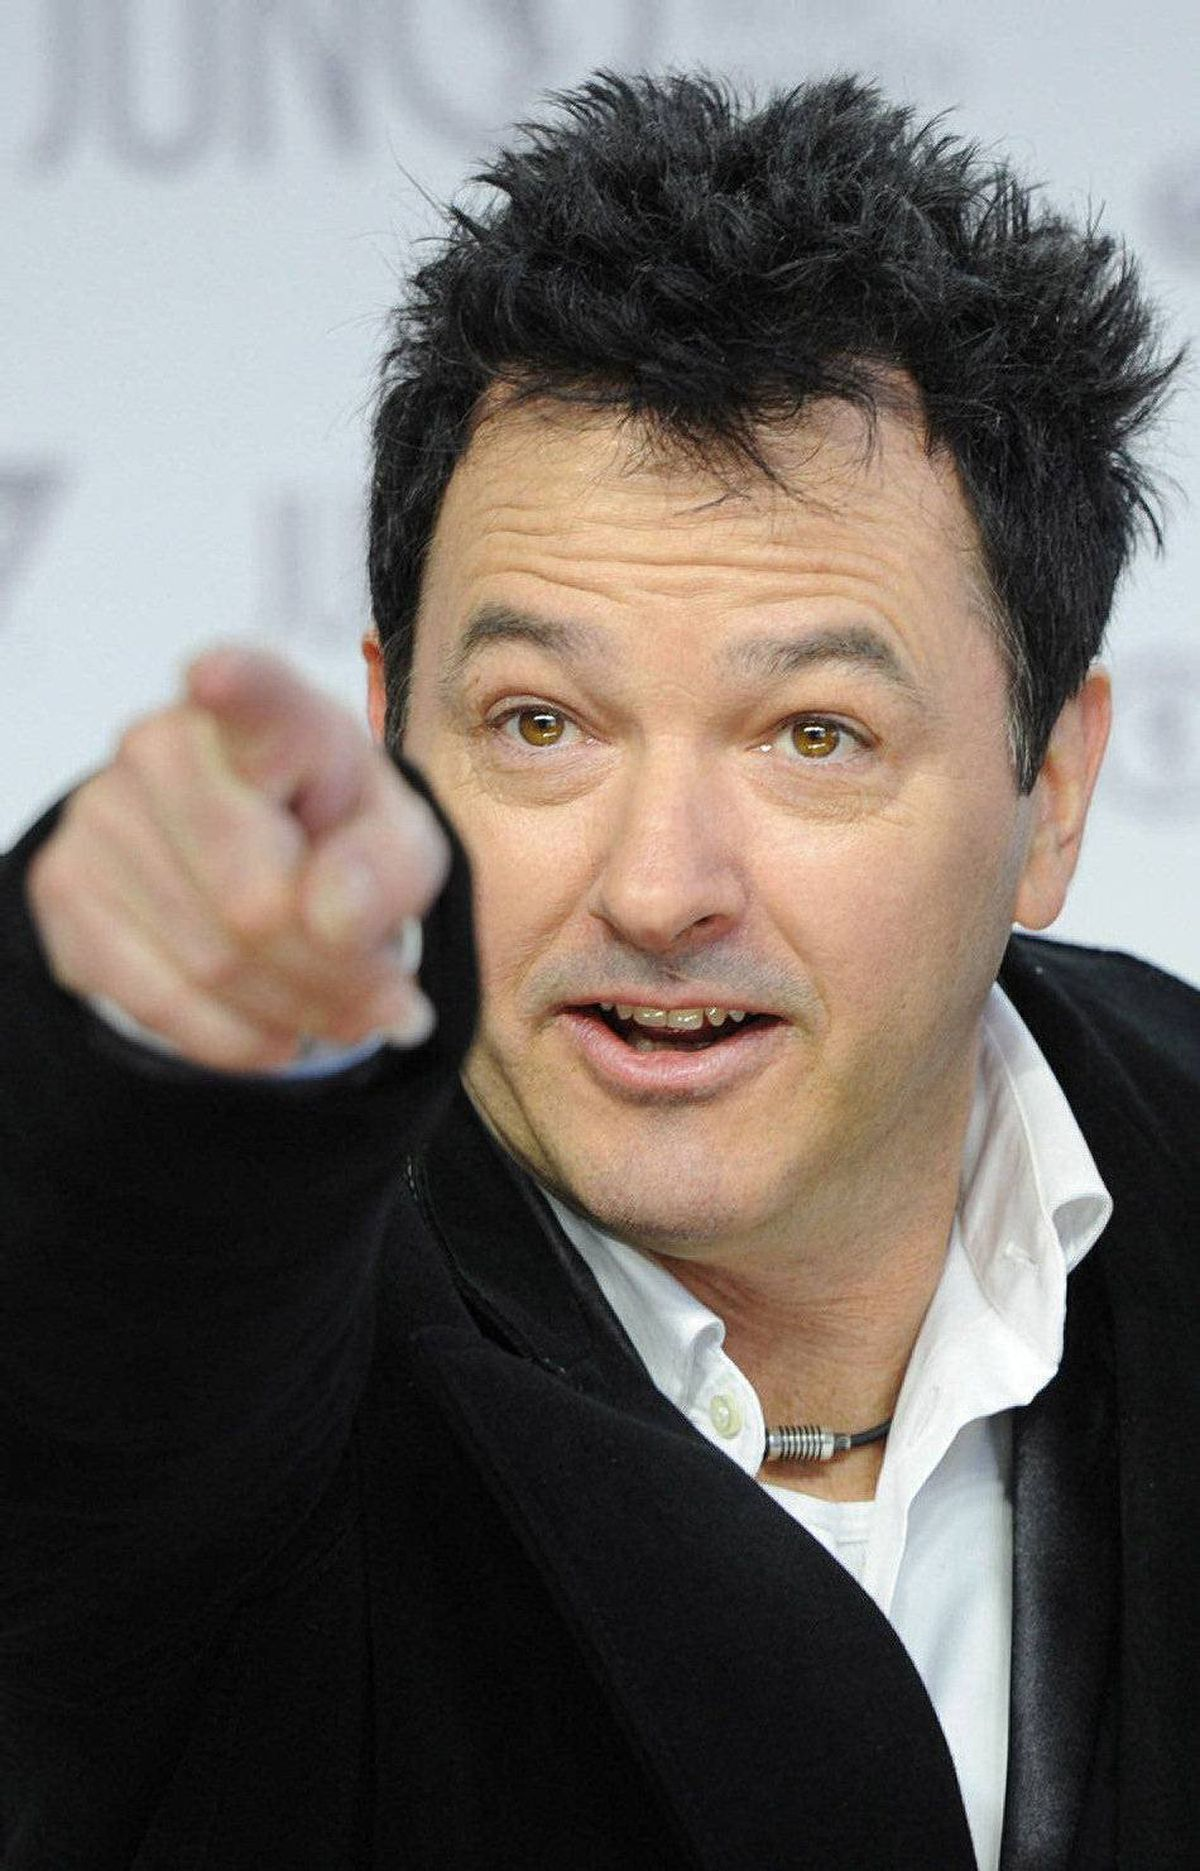 Jimmy Rankin jokes around as he arrives on the red carpet at the Juno Awards in Ottawa, Sunday April 1, 2012.